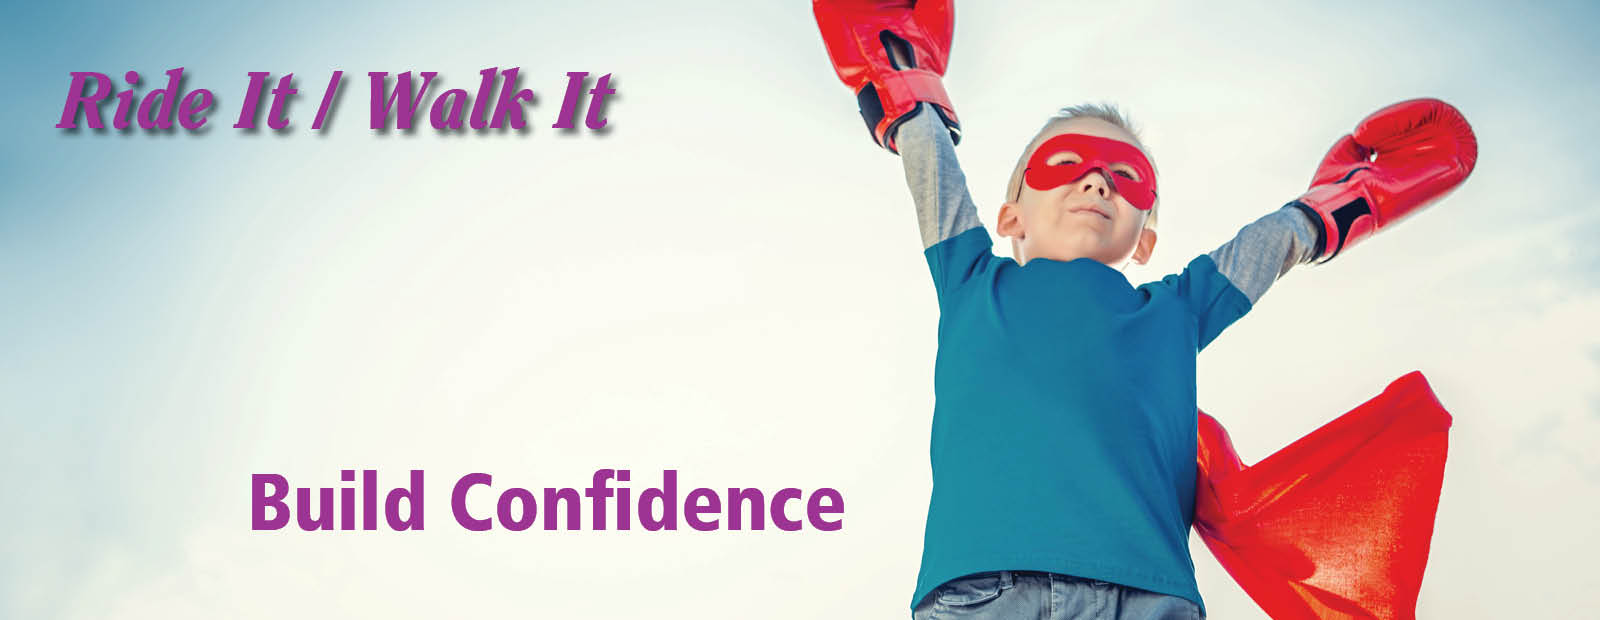 You Can Build Confidence